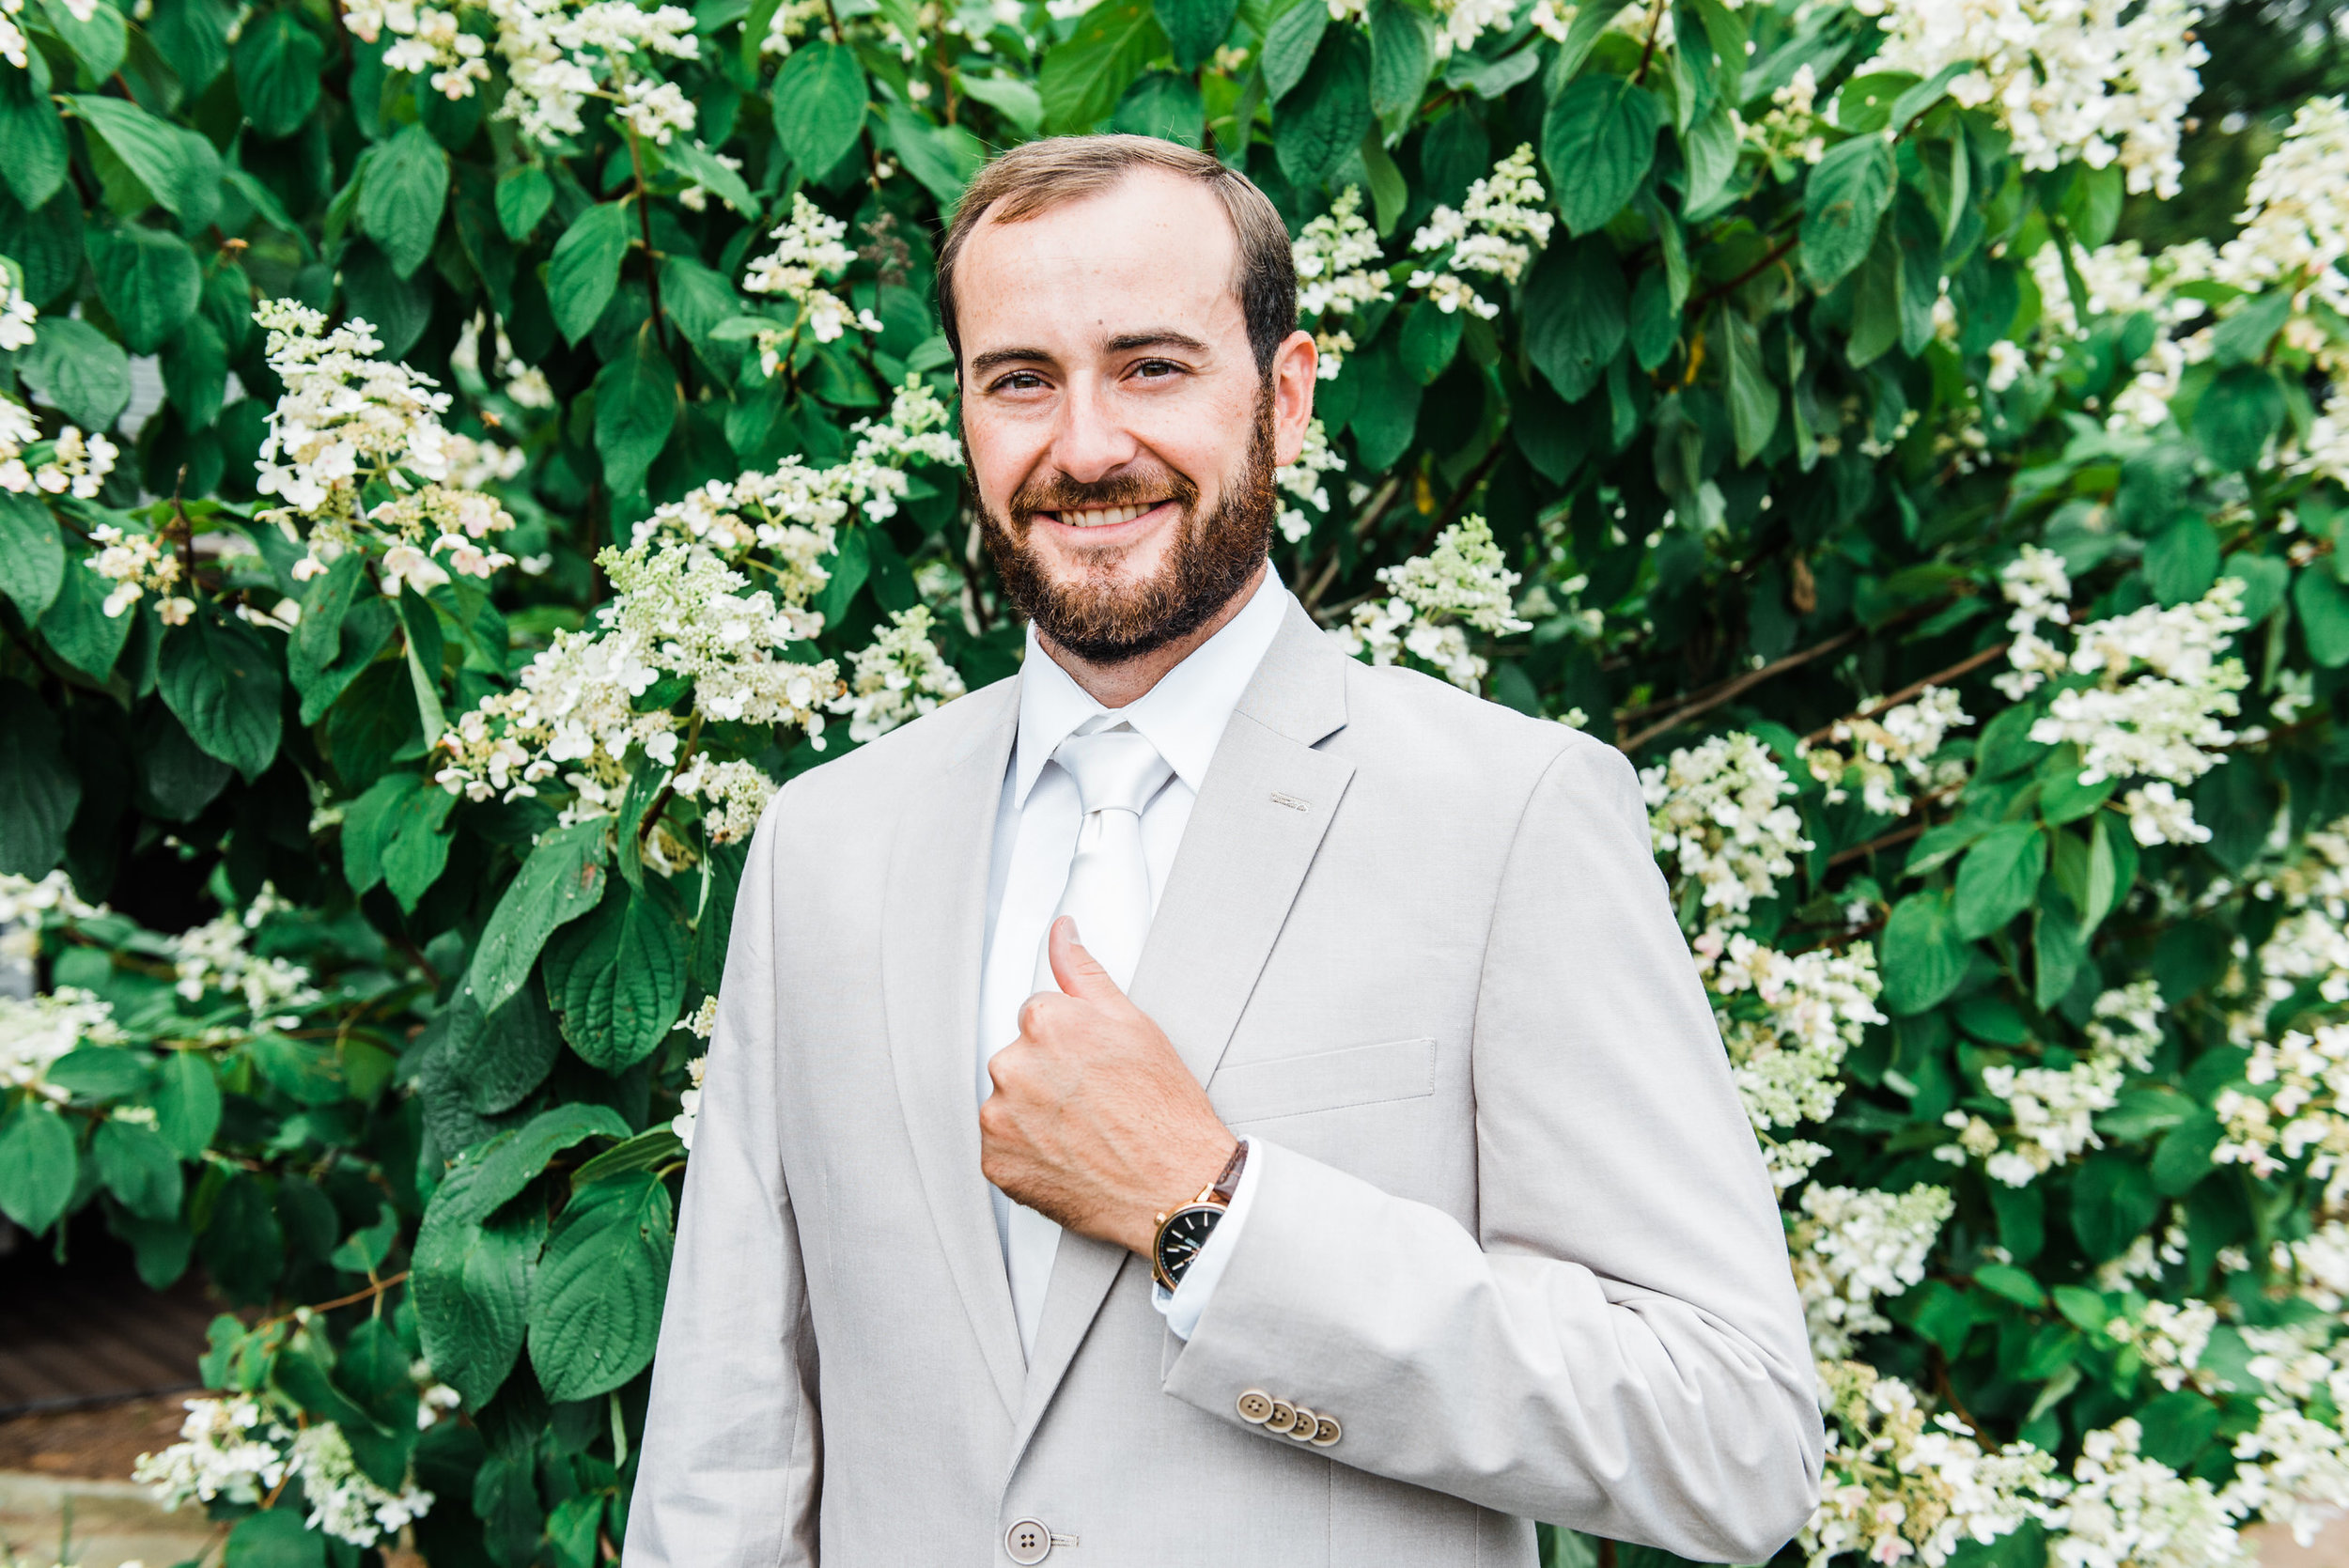 Groom at Armstrong Farm Wedding Venue